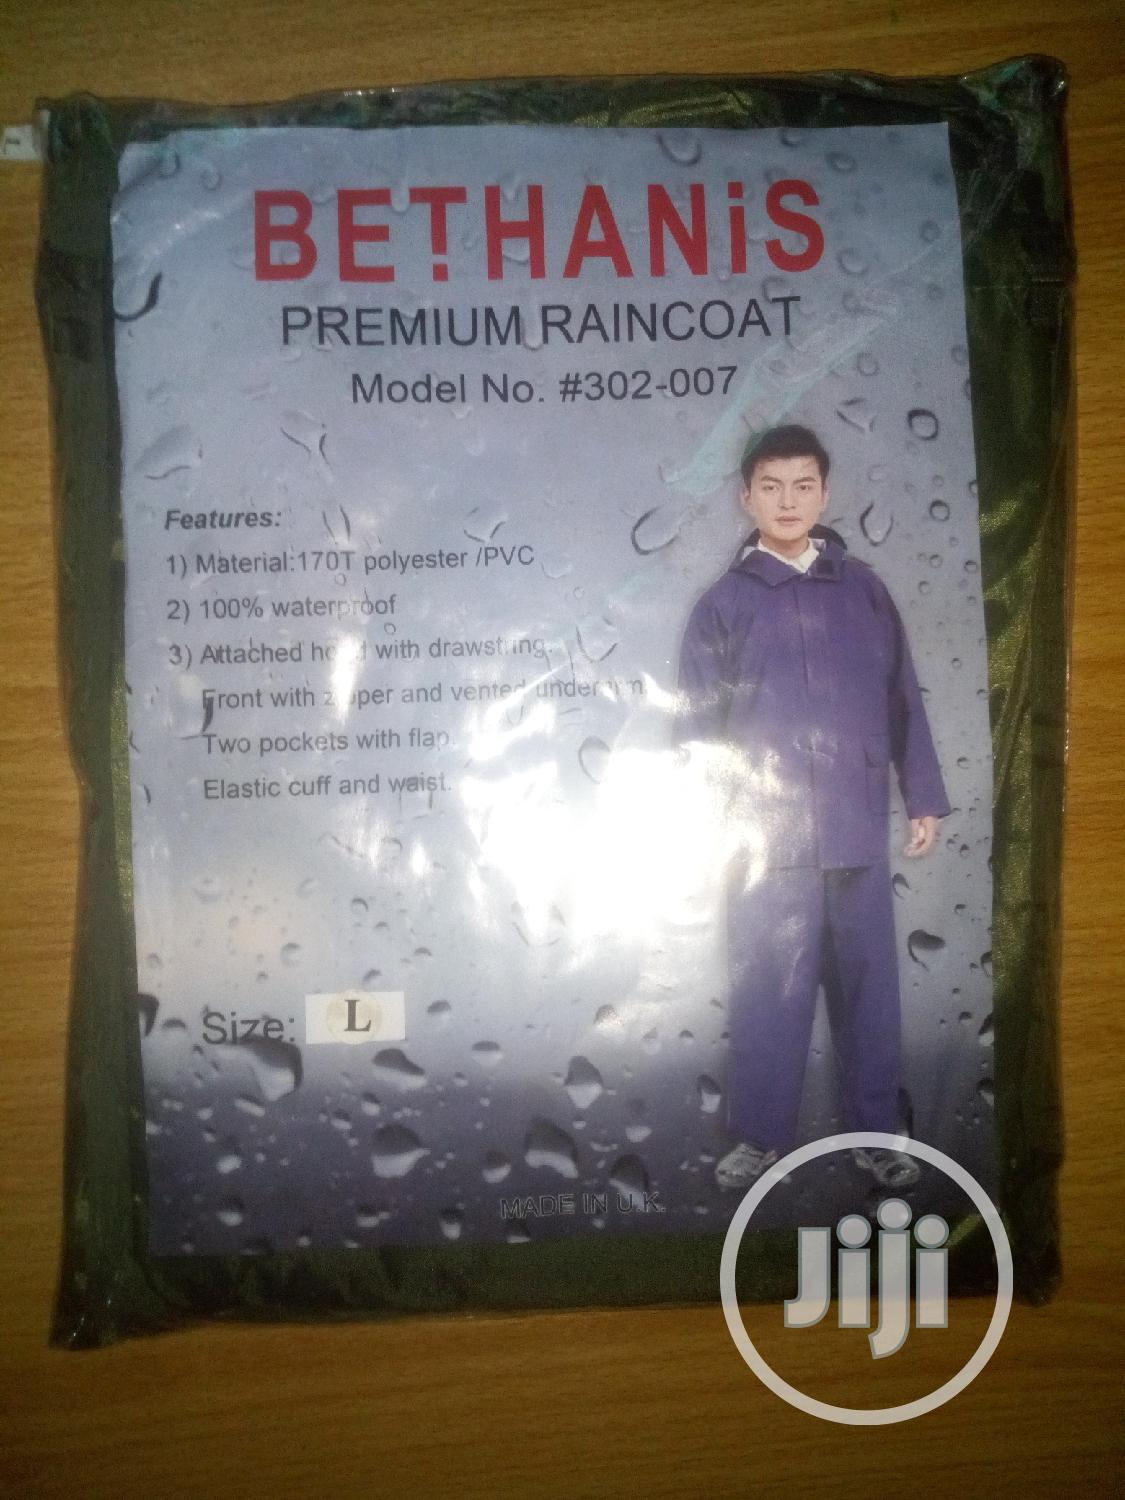 Premium Rain Coat High Quality Is Available Here